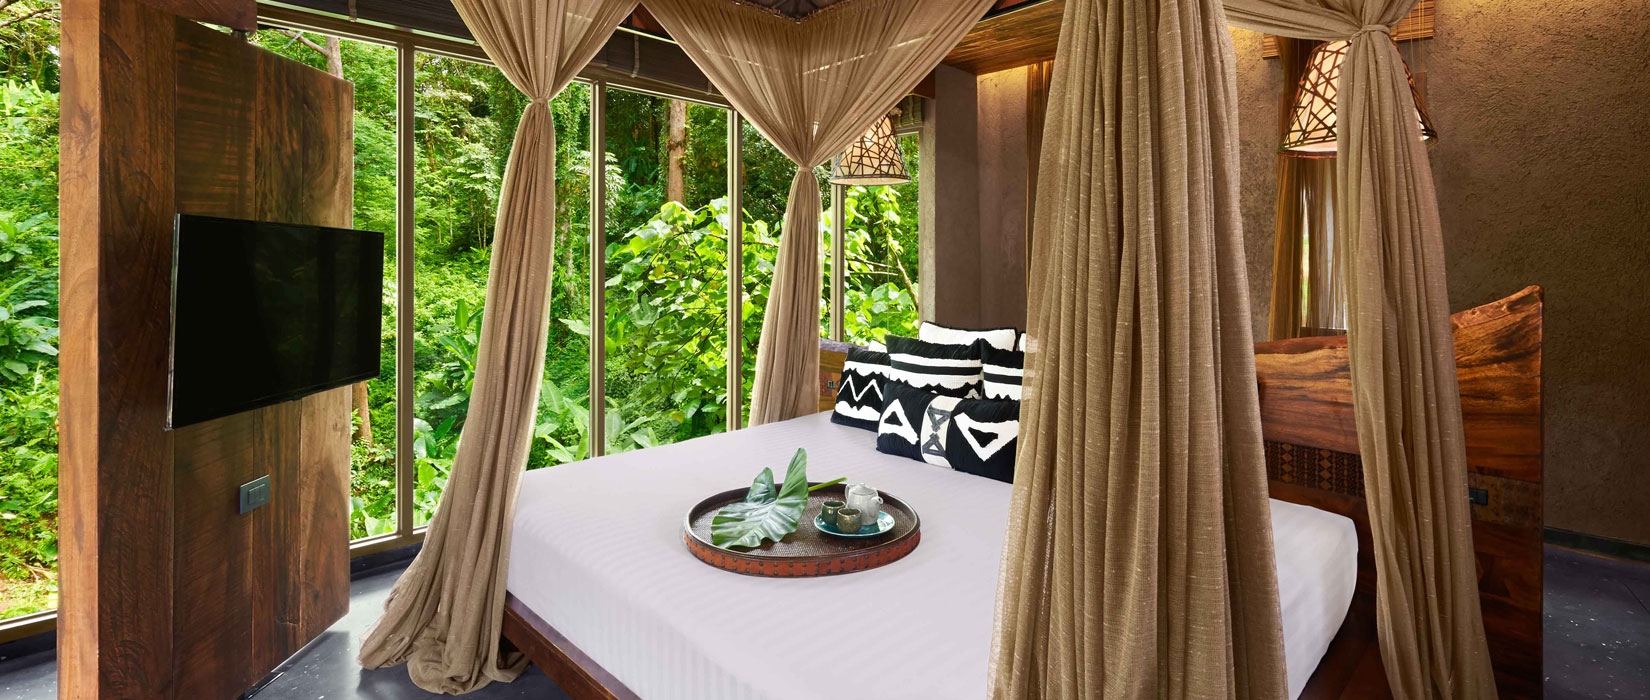 TOTAL RAINFOREST IMMERSION - Keemala Hotel Phuket